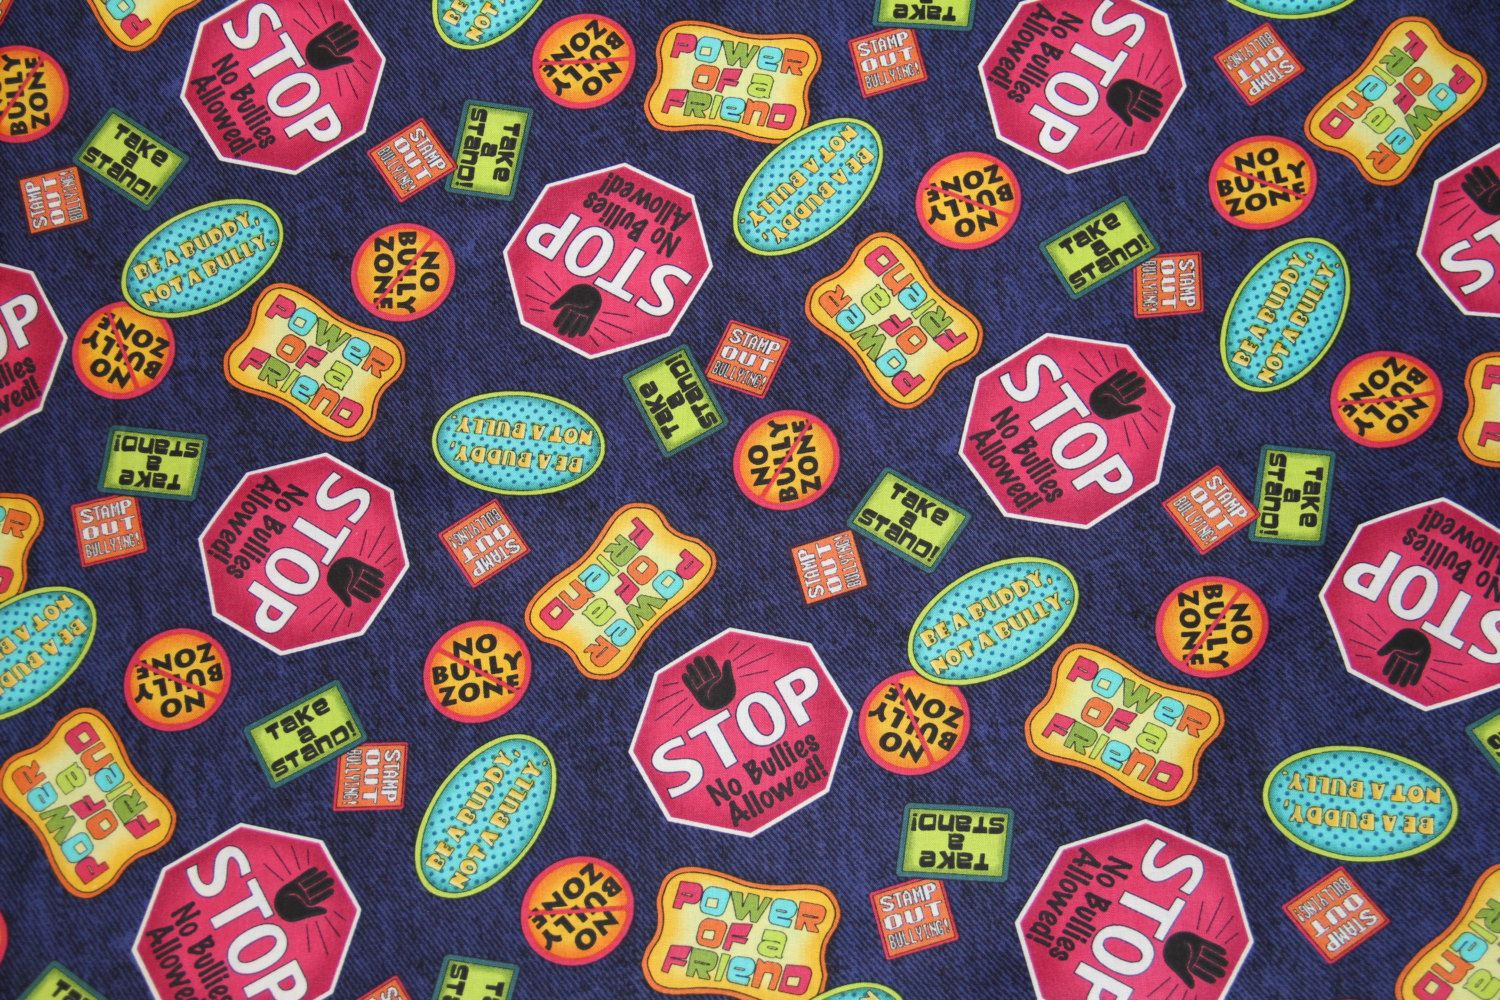 Studio 8 Quilting Treasures Stop Bullying Take A Stand Against Bullying Fabric By The Yard Bully Fabric By Pms Quilting Treasures Fabric Quilts